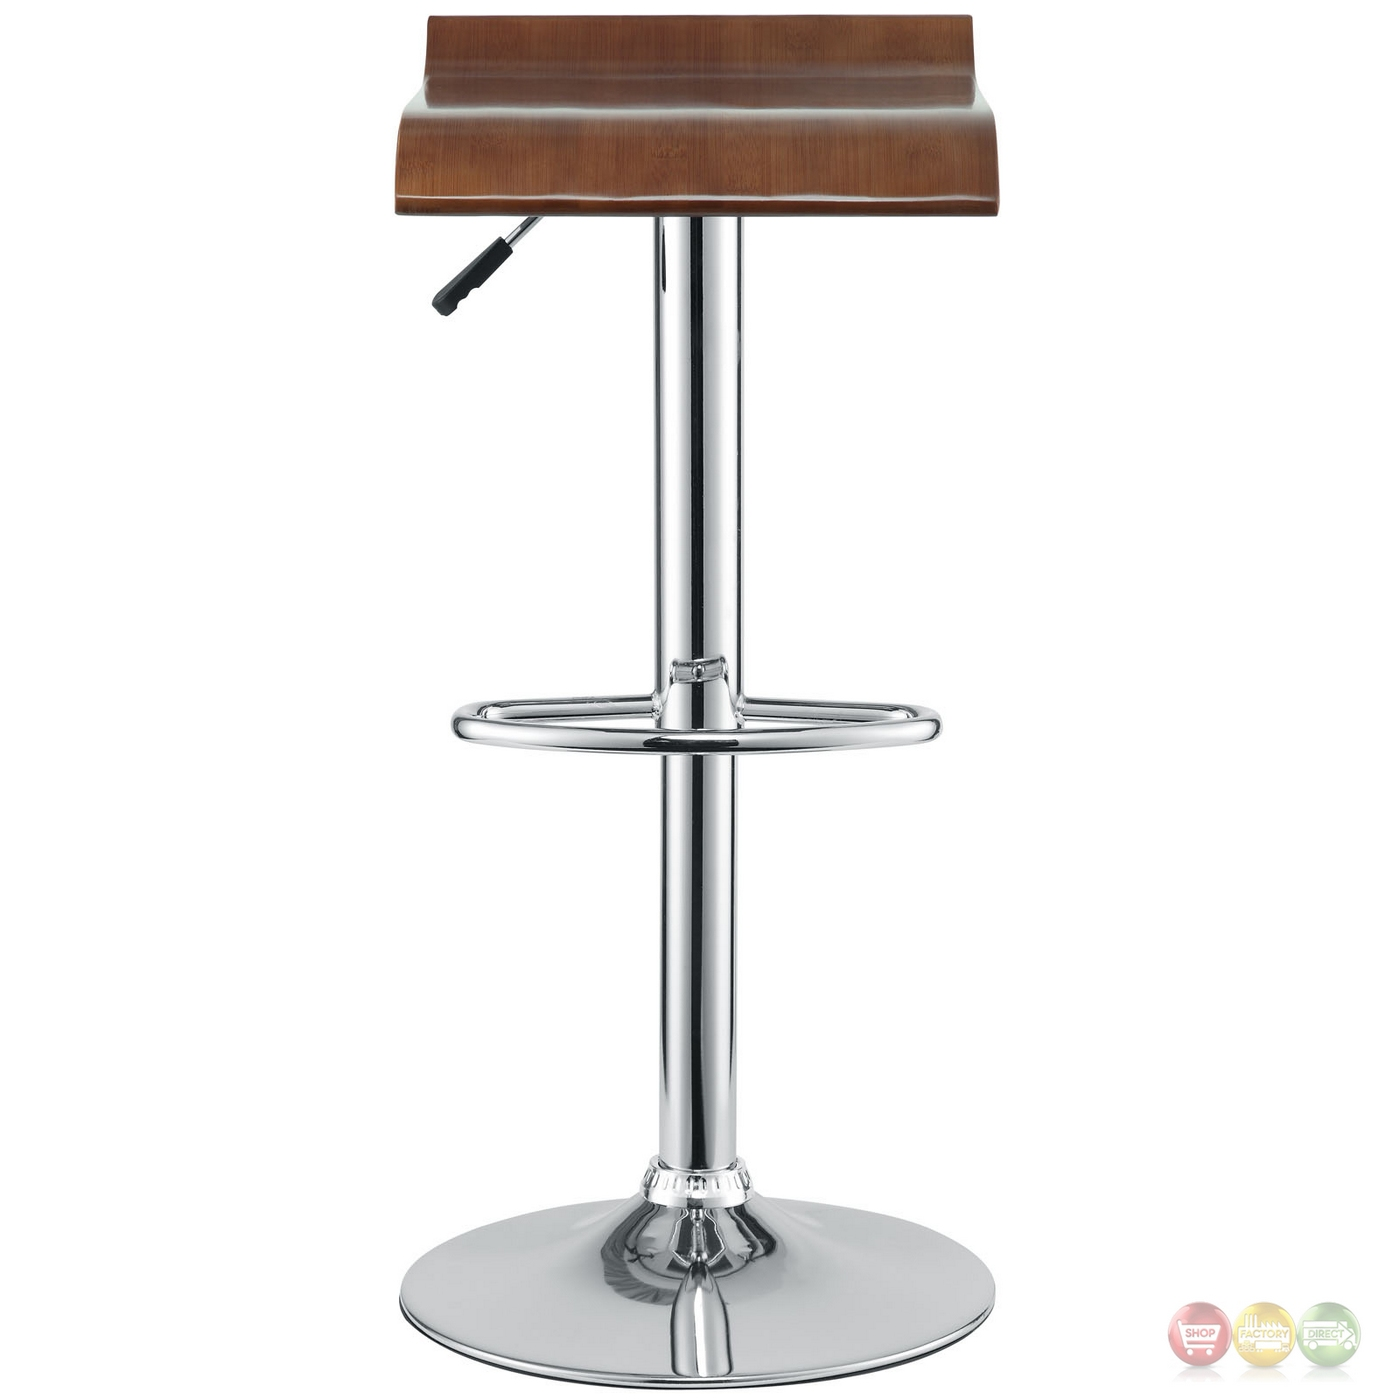 Bentwood Modern Wooden Seat Bar Stool W Chrome Base Amp Foot